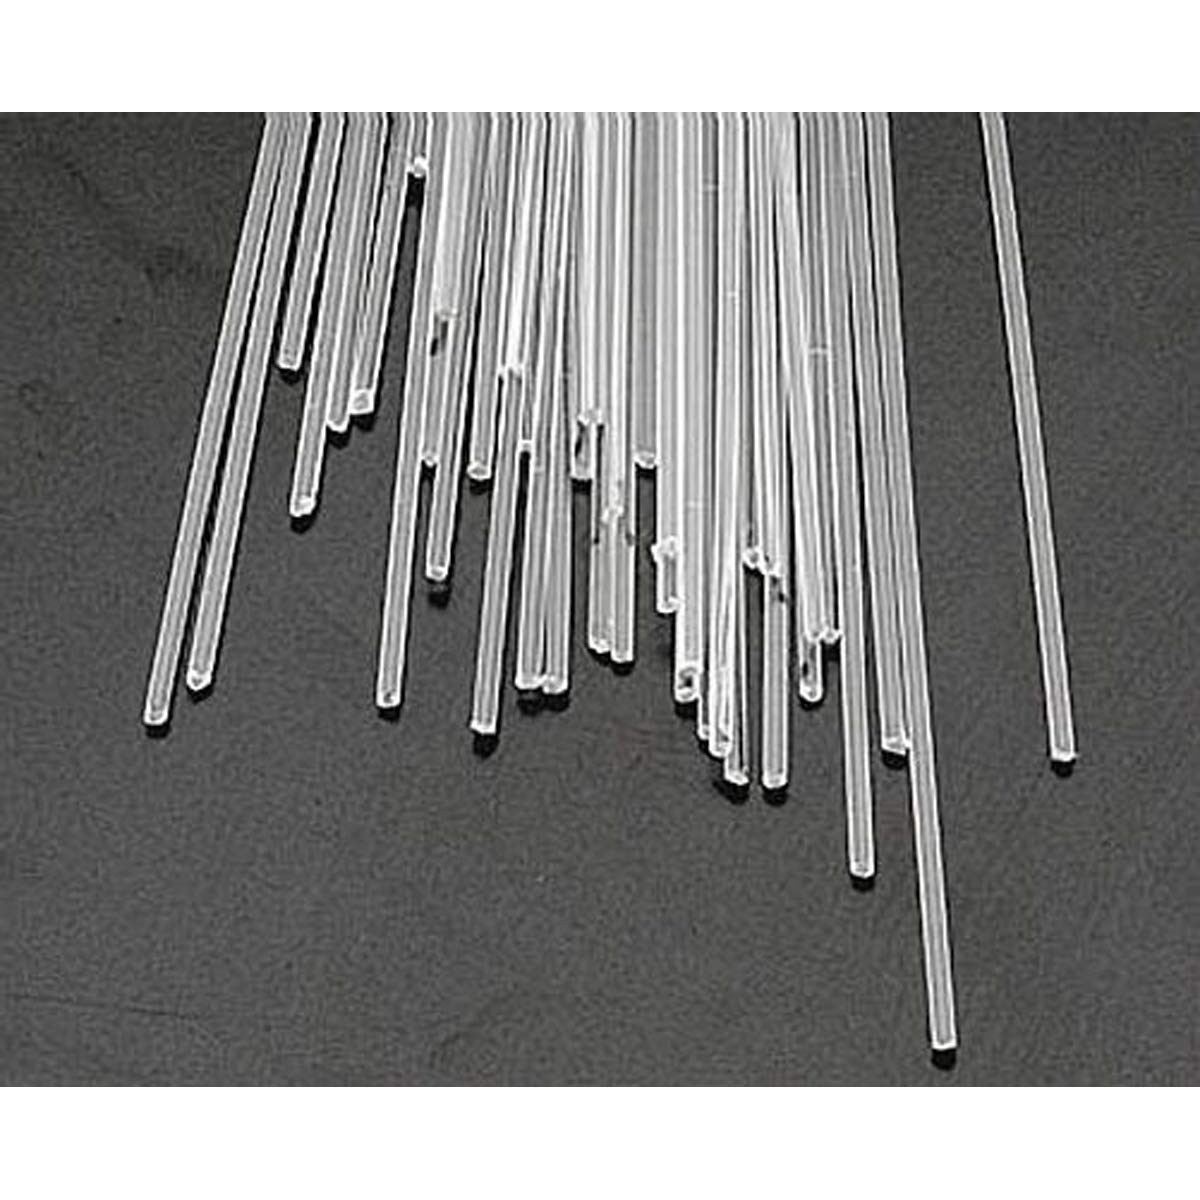 Online Metal Supply Machine Grade Polycarbonate Round Rod 1.375 Natural 1-3//8 inch x 18 inches